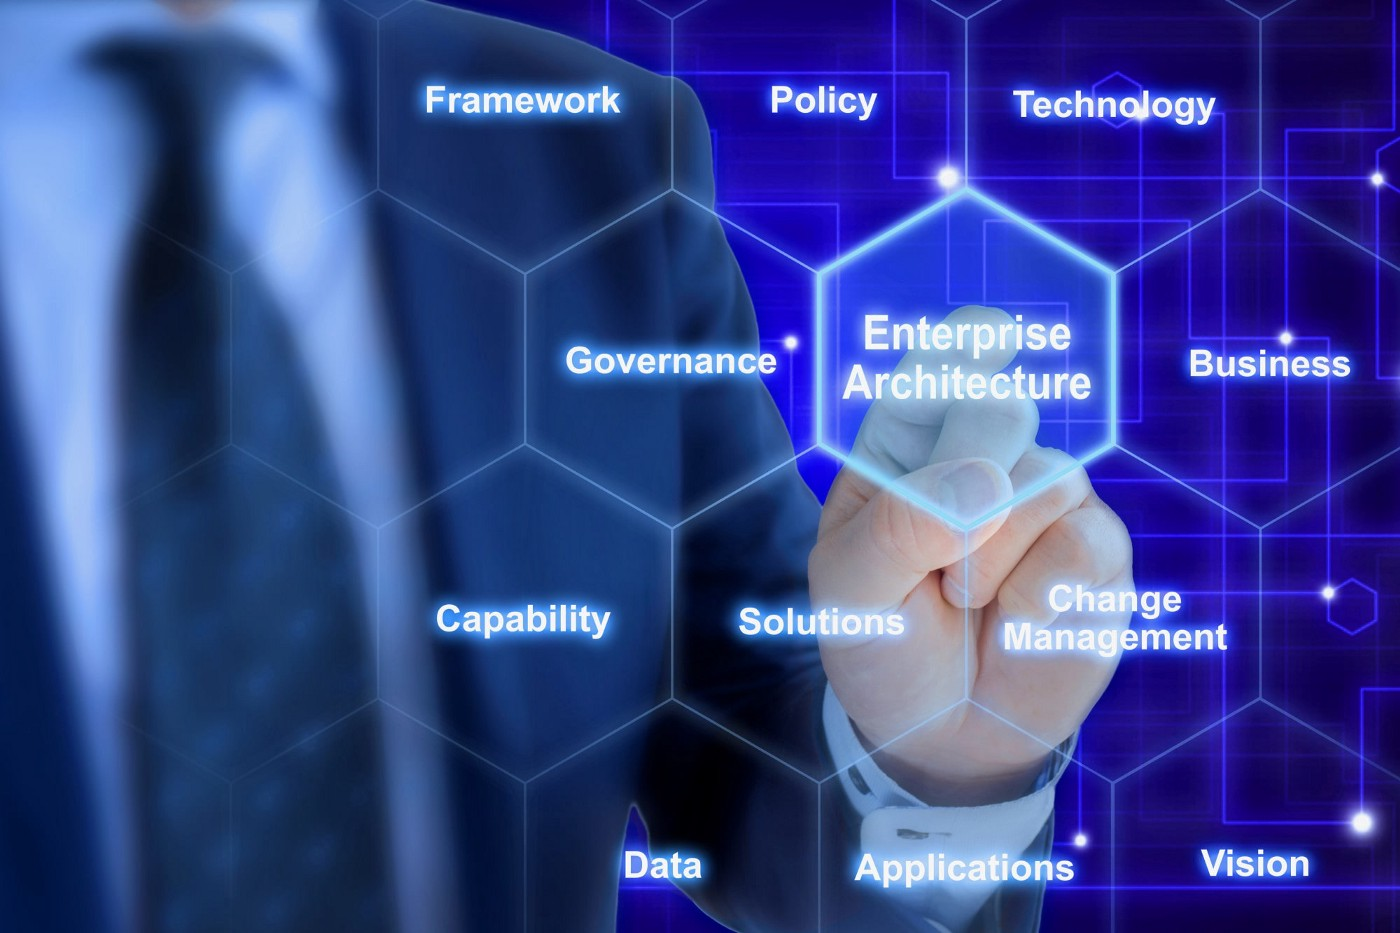 Enterprise architecture plays a vital role in today's modern IT-driven organizations.